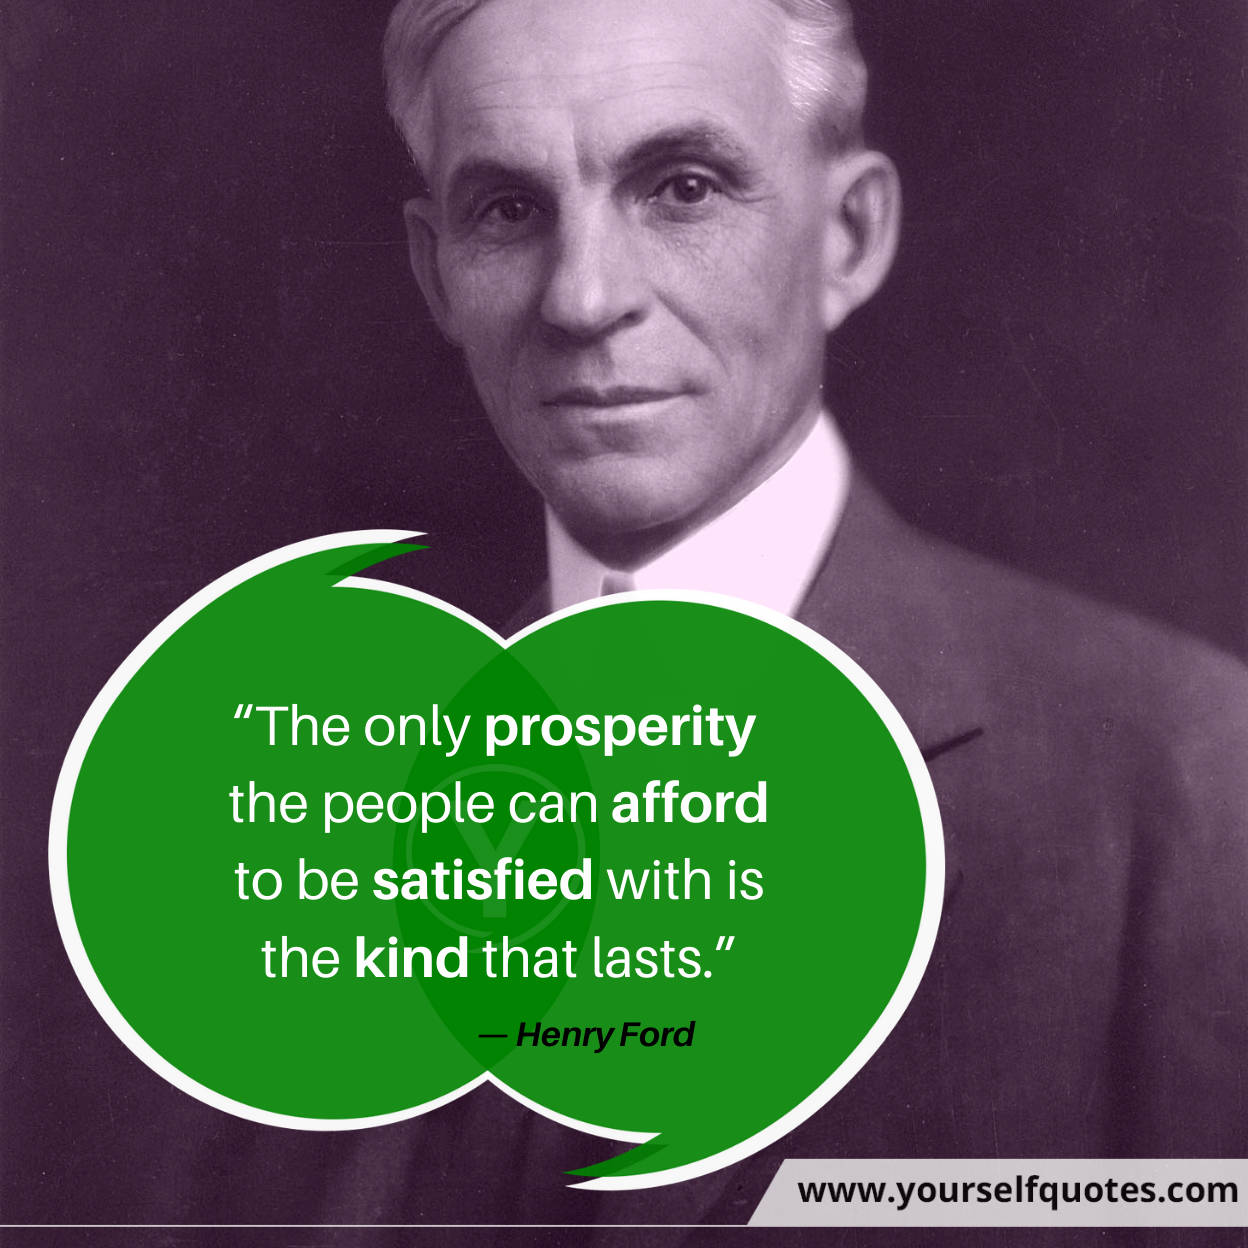 Quotes Henry Ford Images